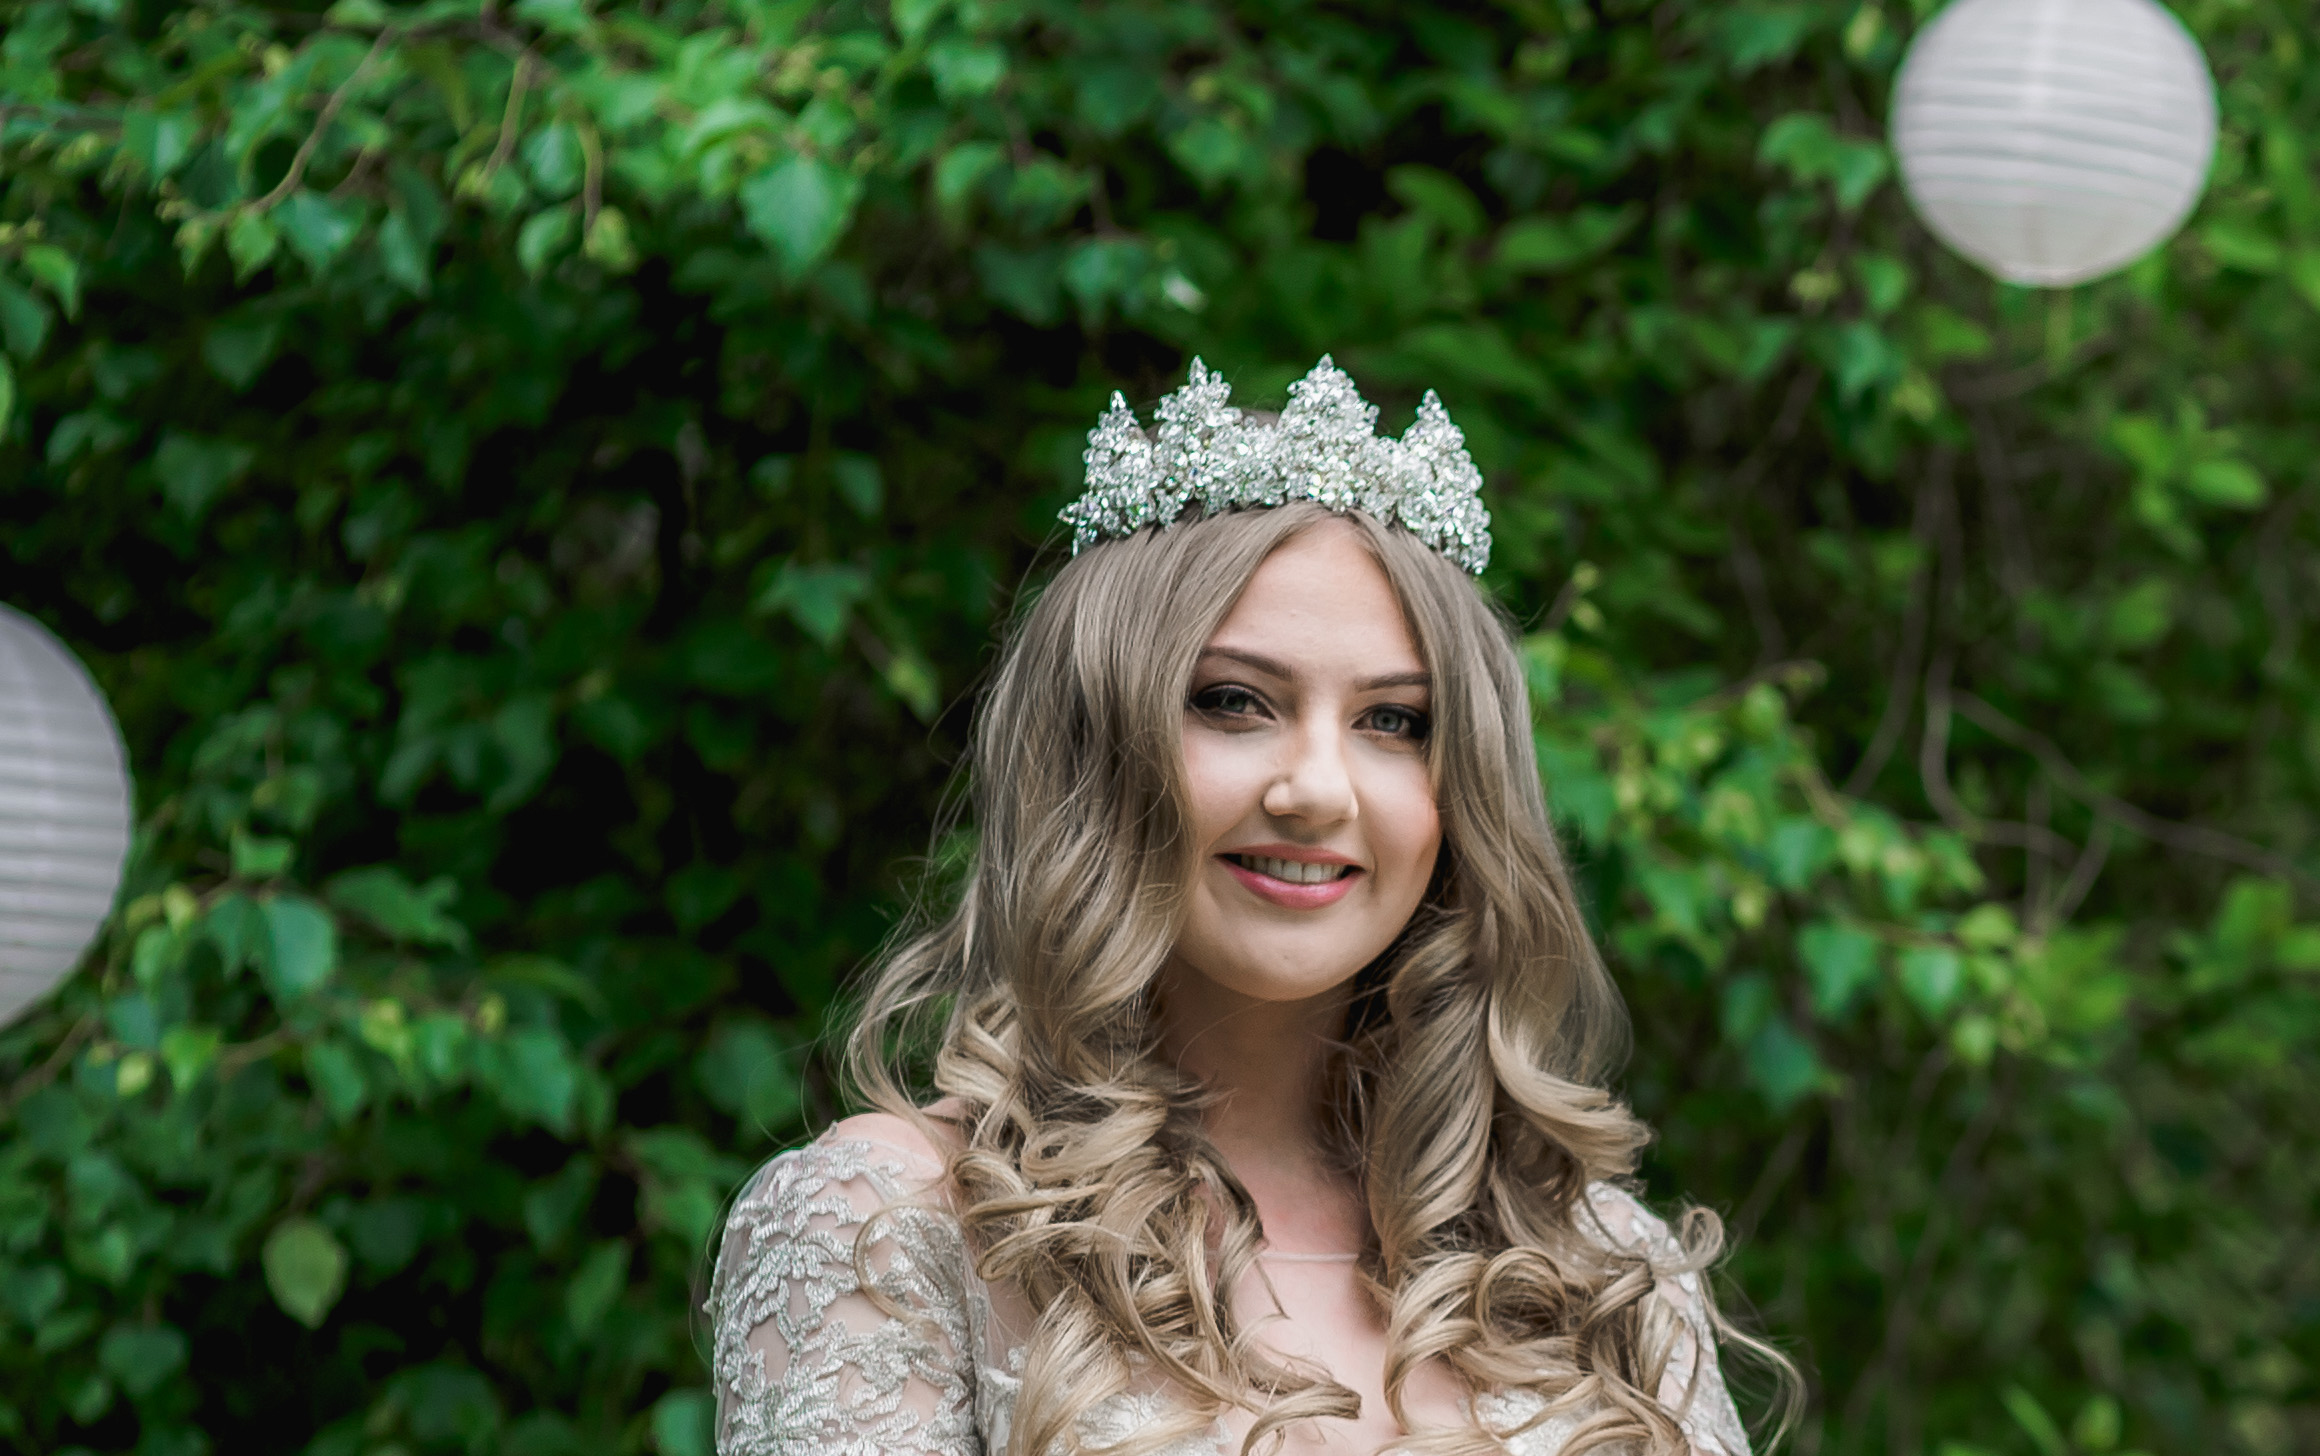 large crystal bridal crown on long hair bride